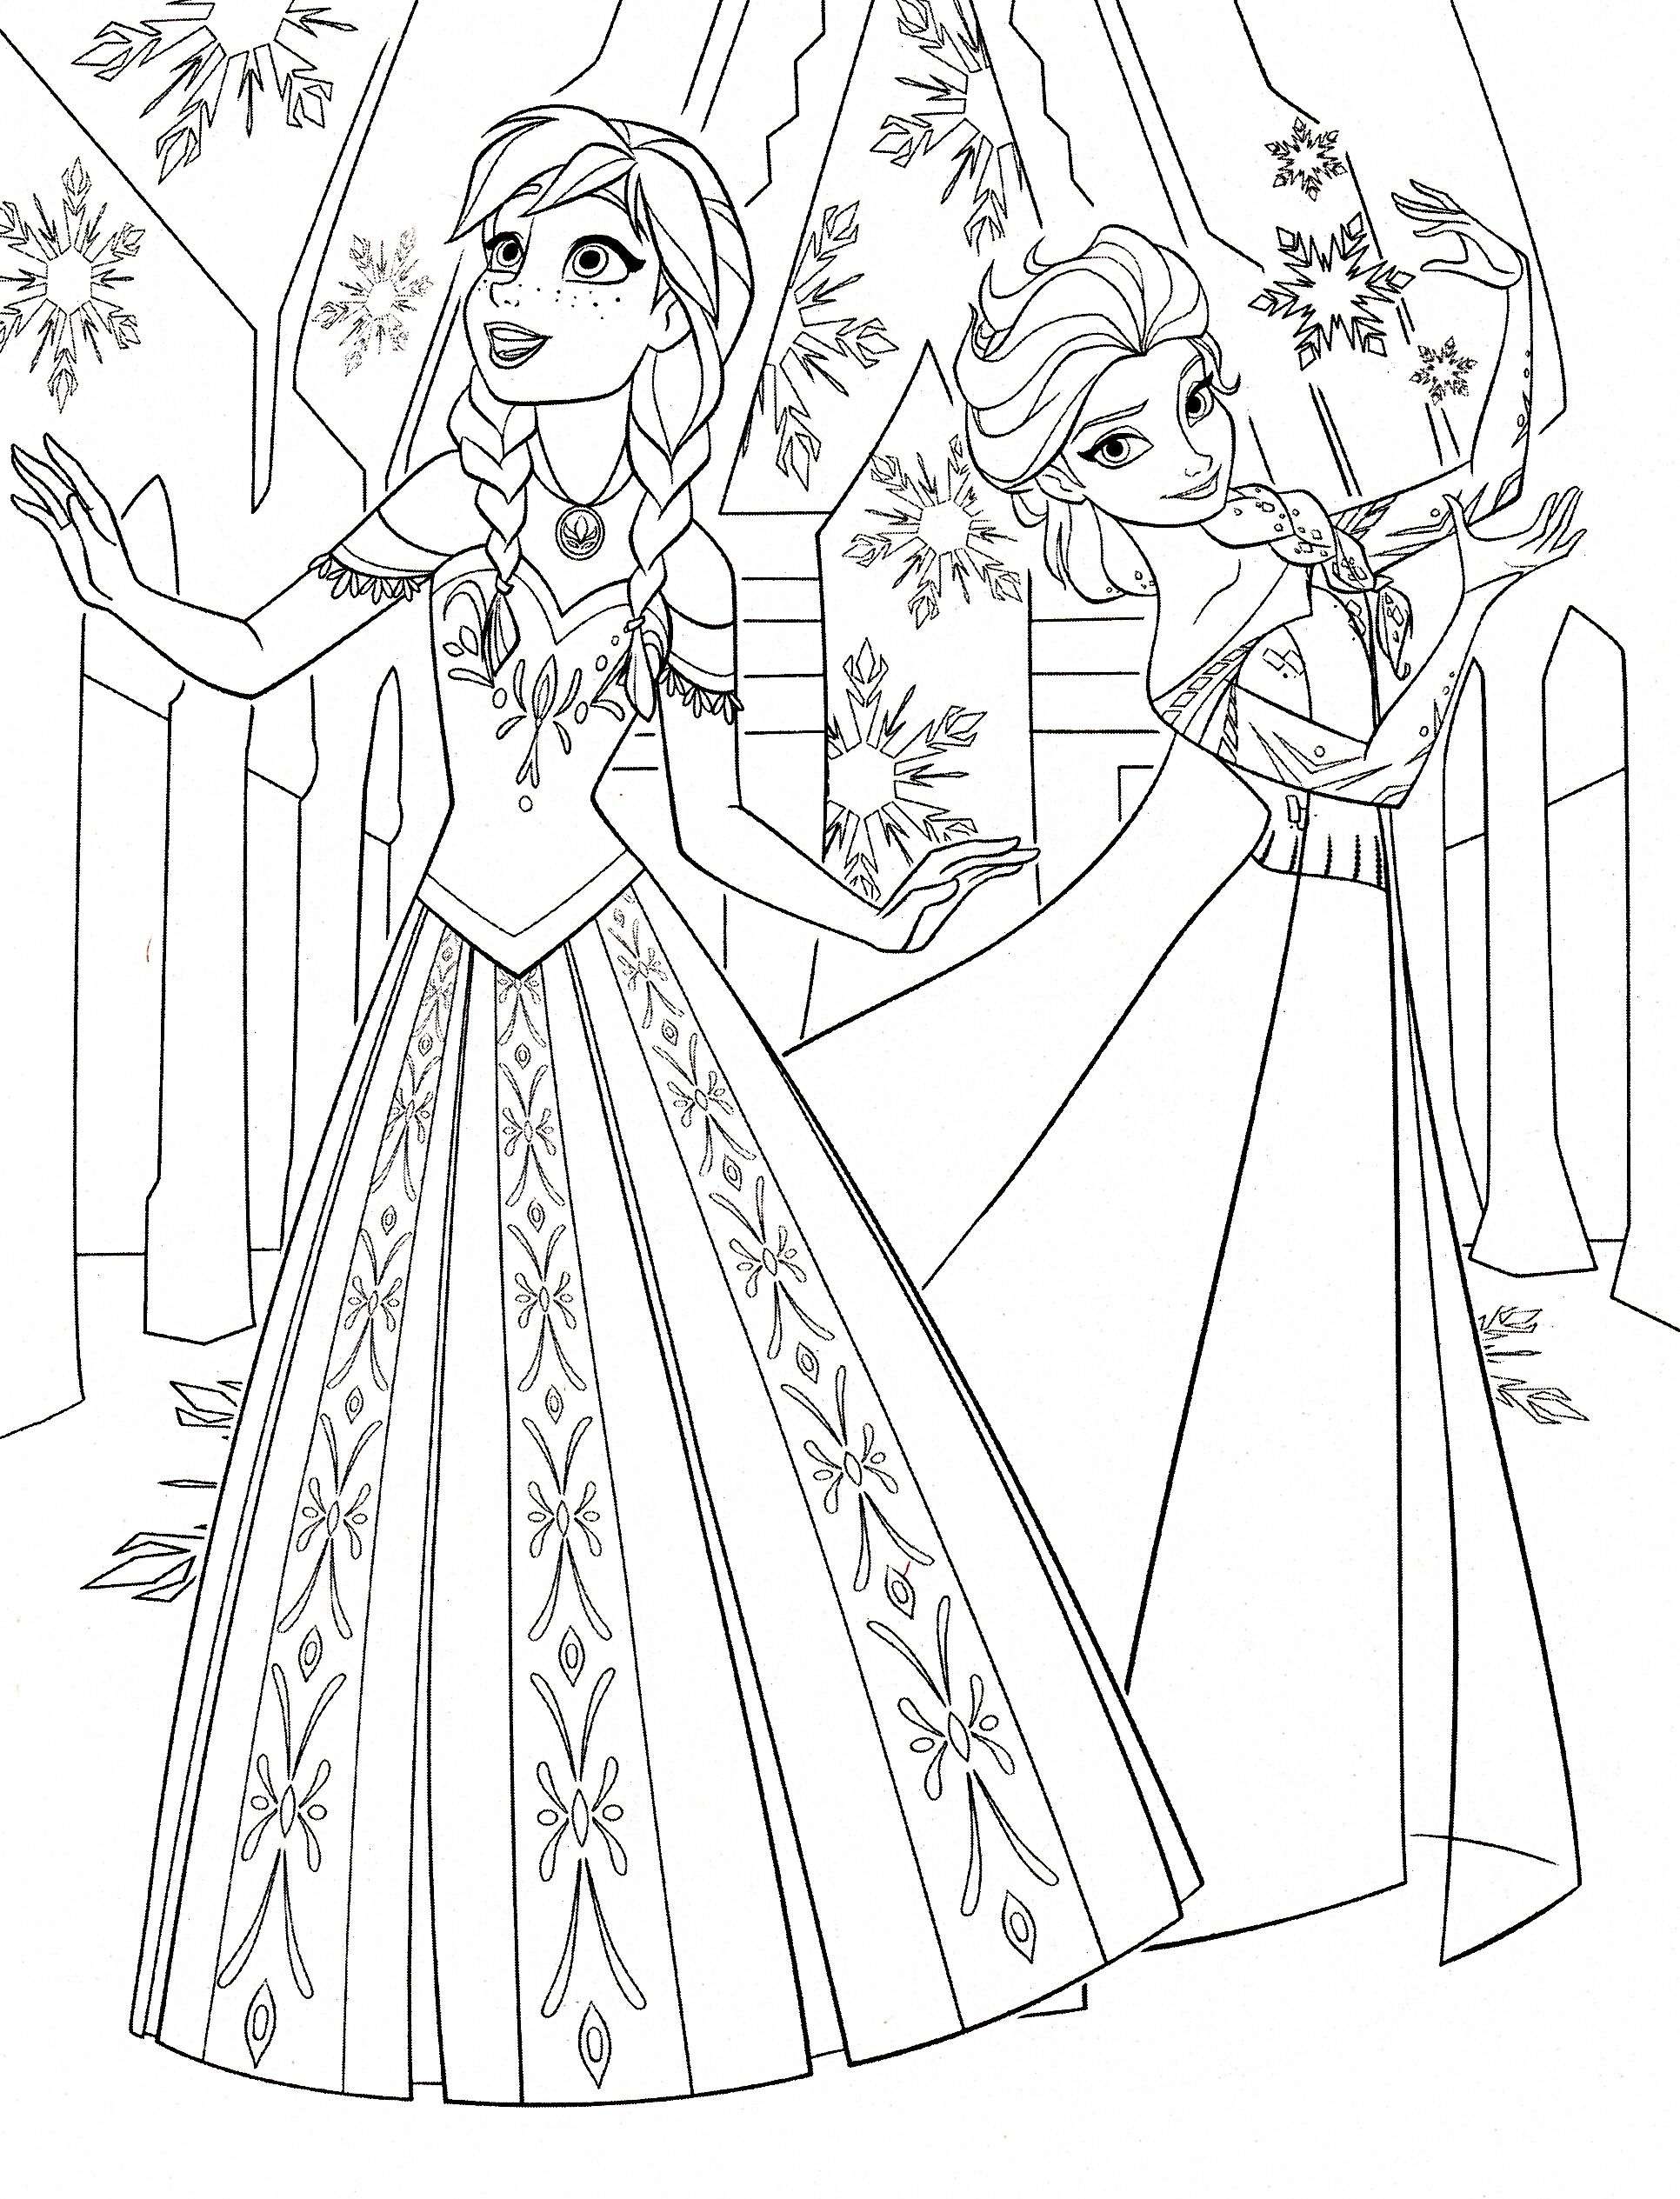 Elsa Anna Frozen Disney Princess Coloring Pages Elsa